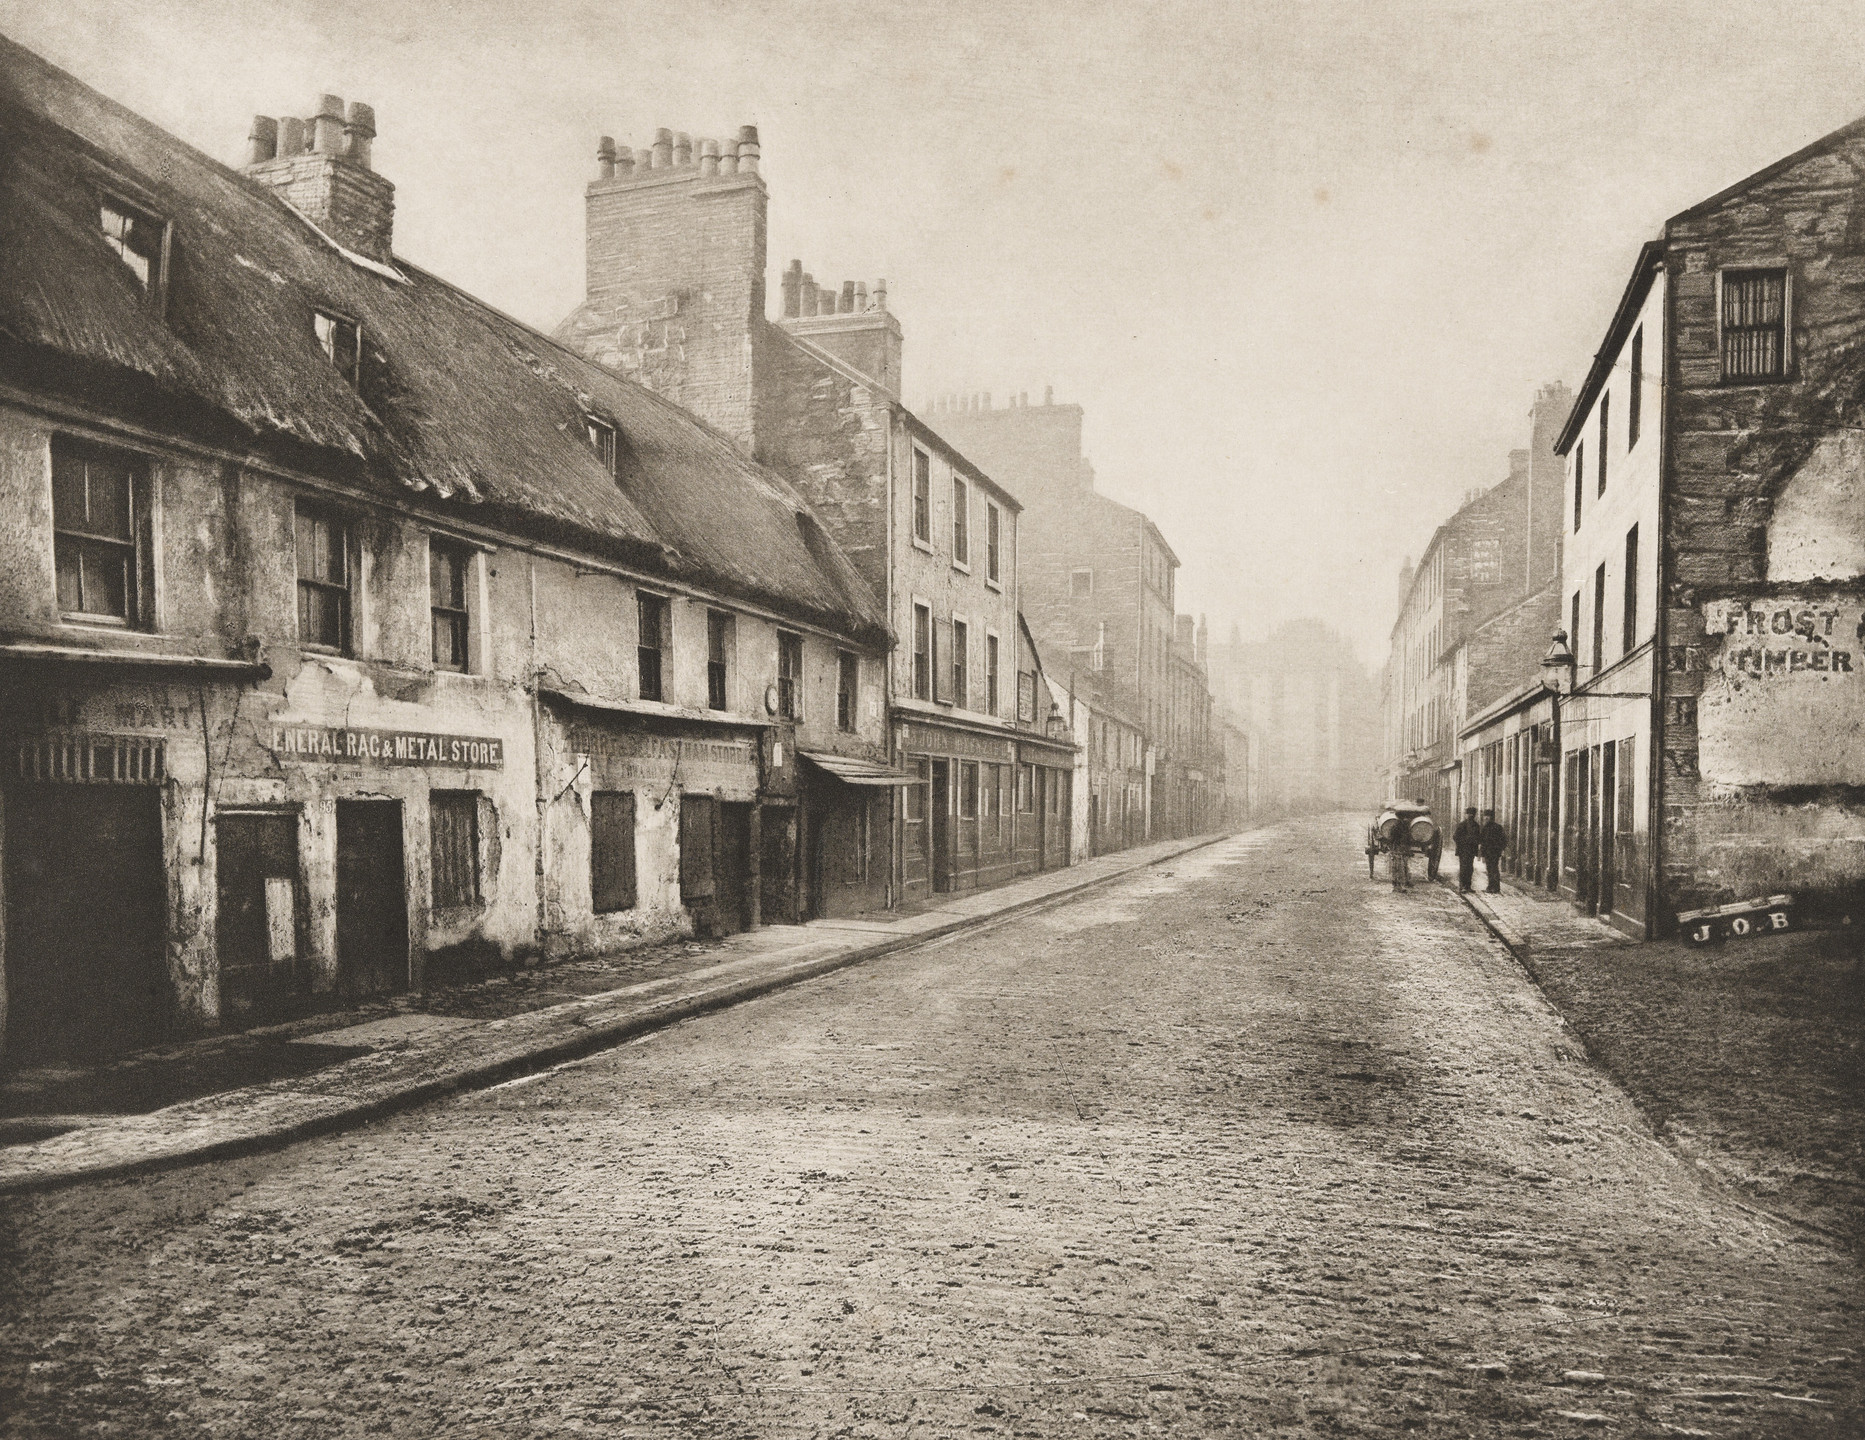 Thomas Annan. Main Street, Gorbals, Looking South. 1868